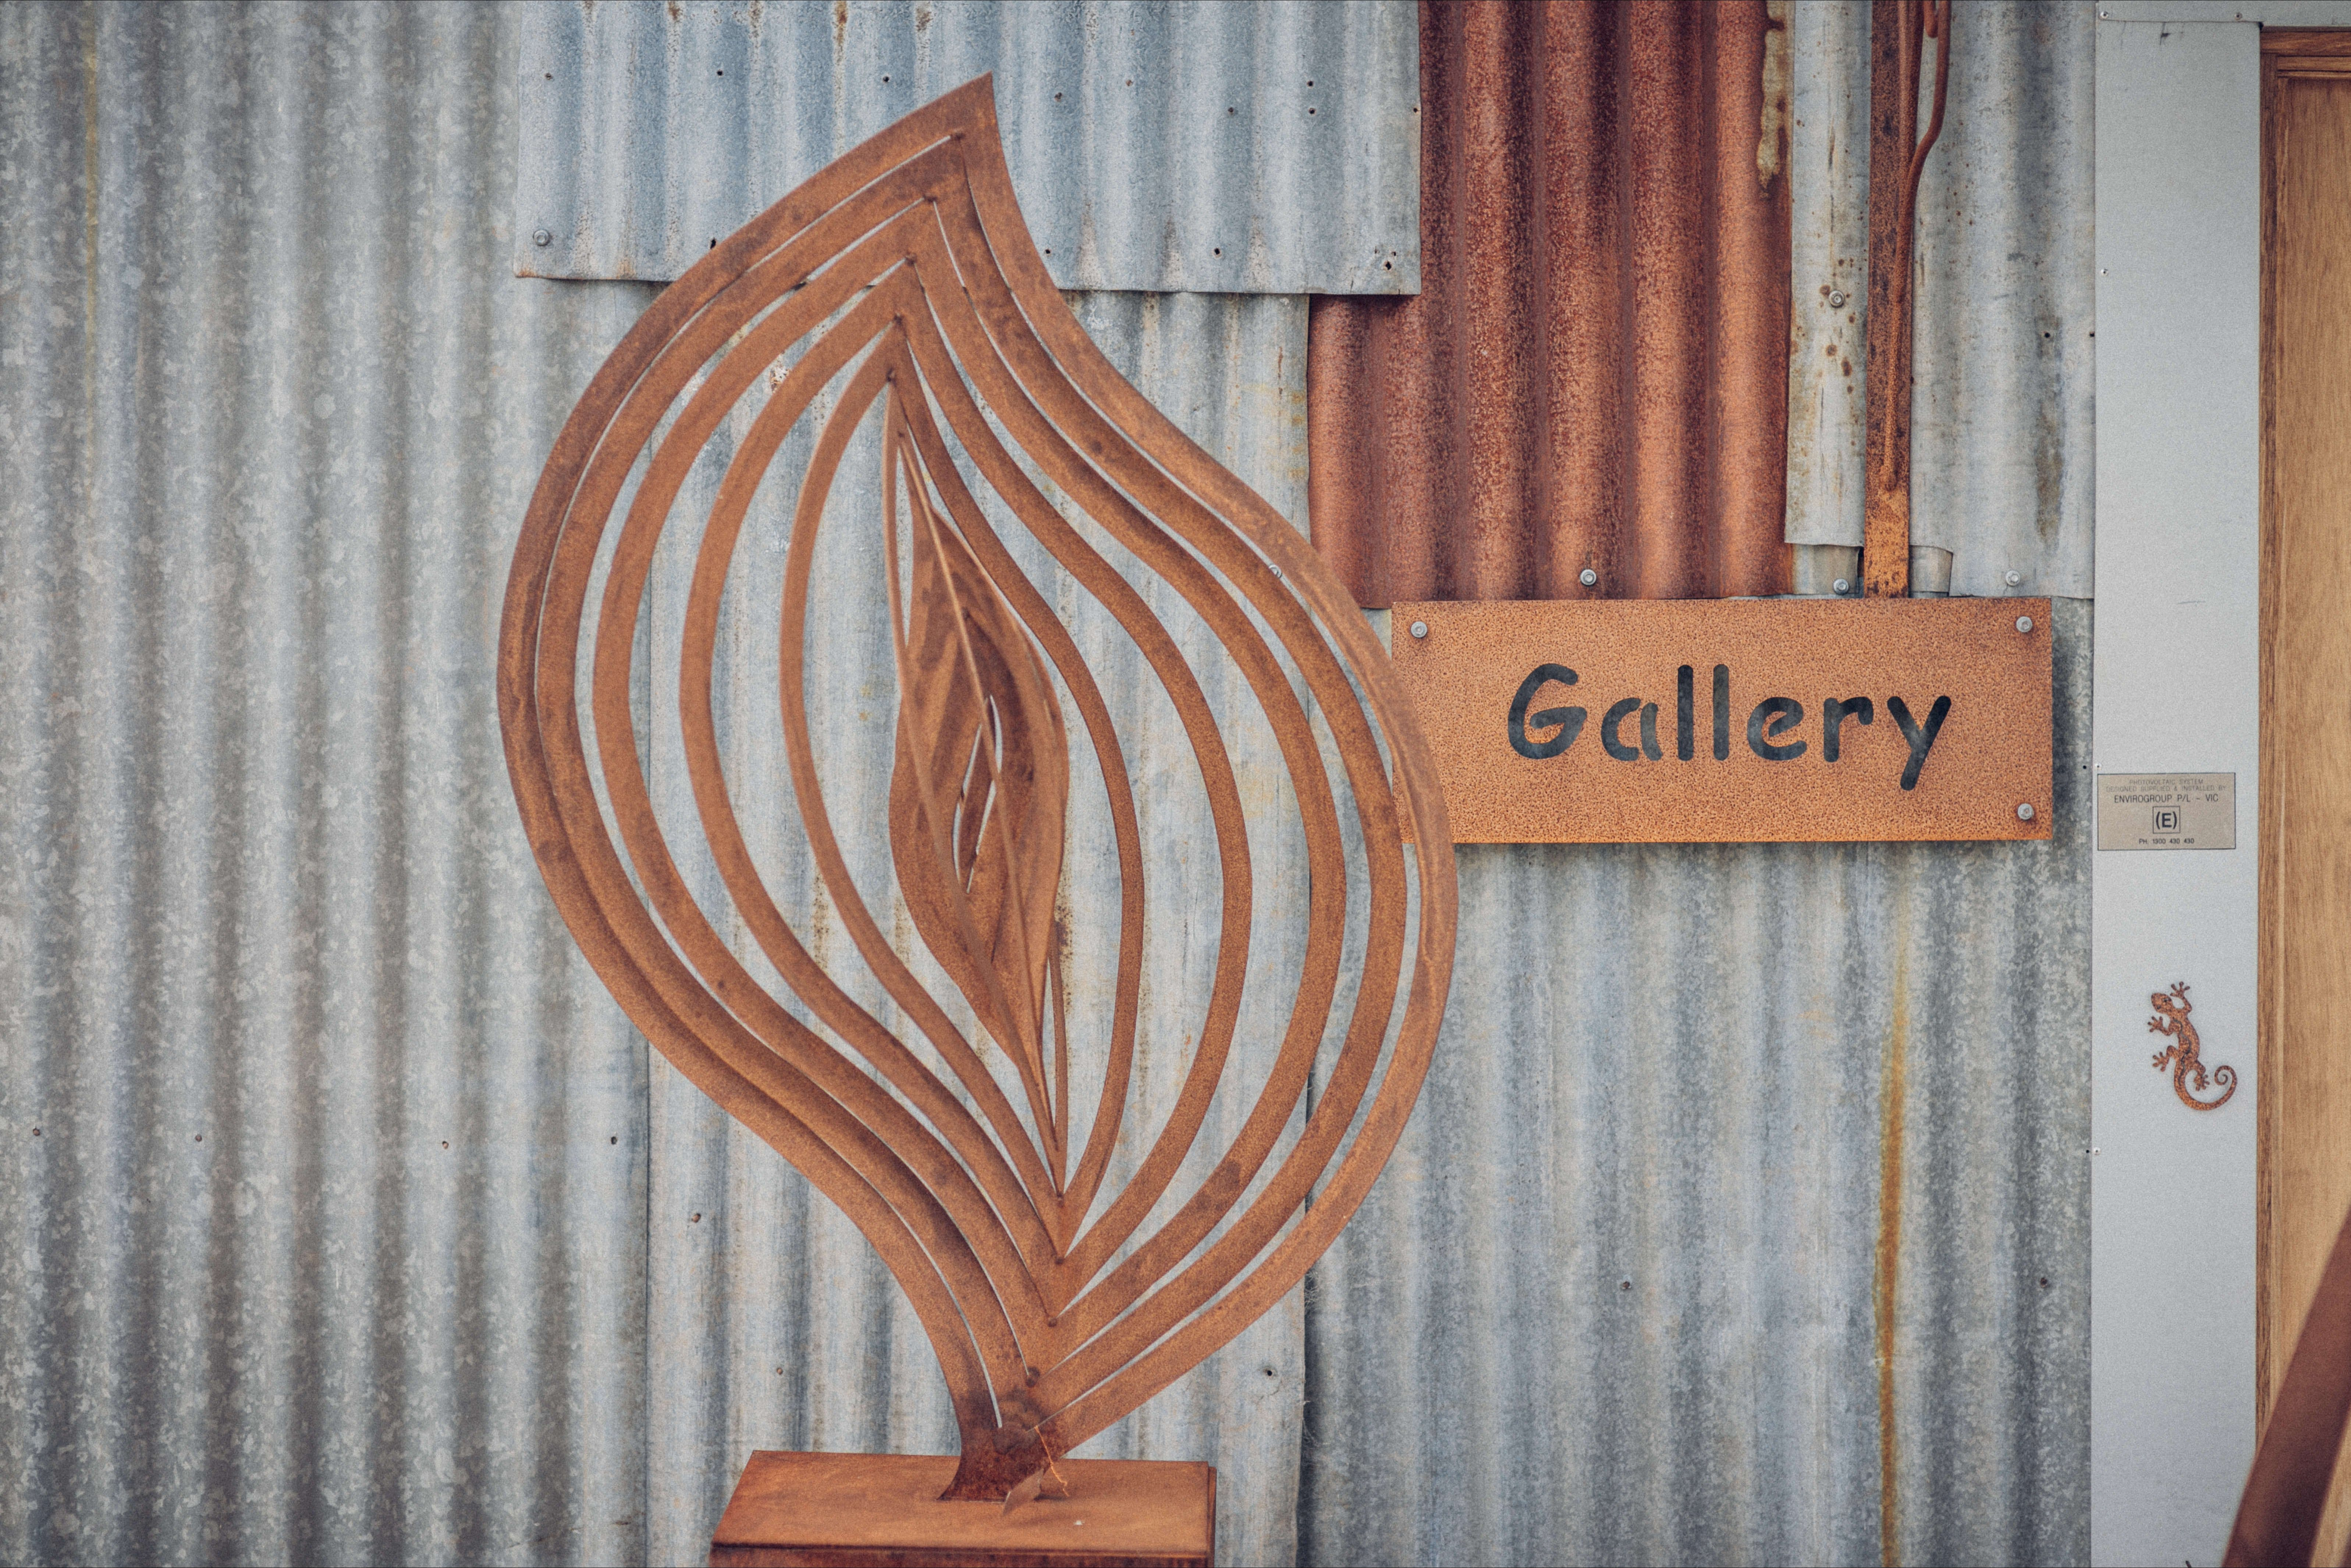 Overwrought Sculpture Garden and Gallery - Accommodation Sydney